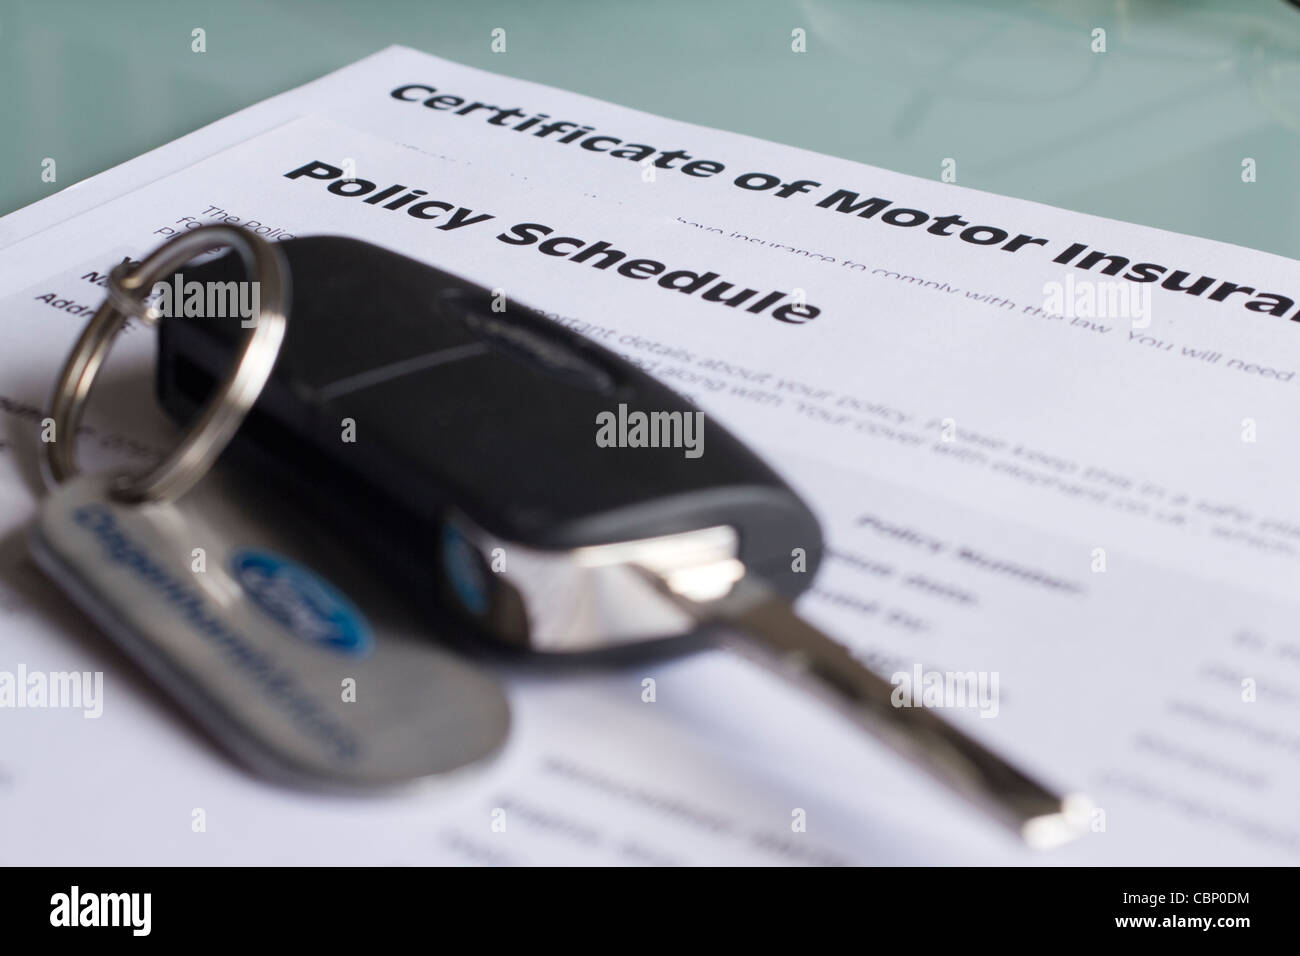 UK certificat d'assurance automobile, assurance auto, l'annexe de la politique Photo Stock